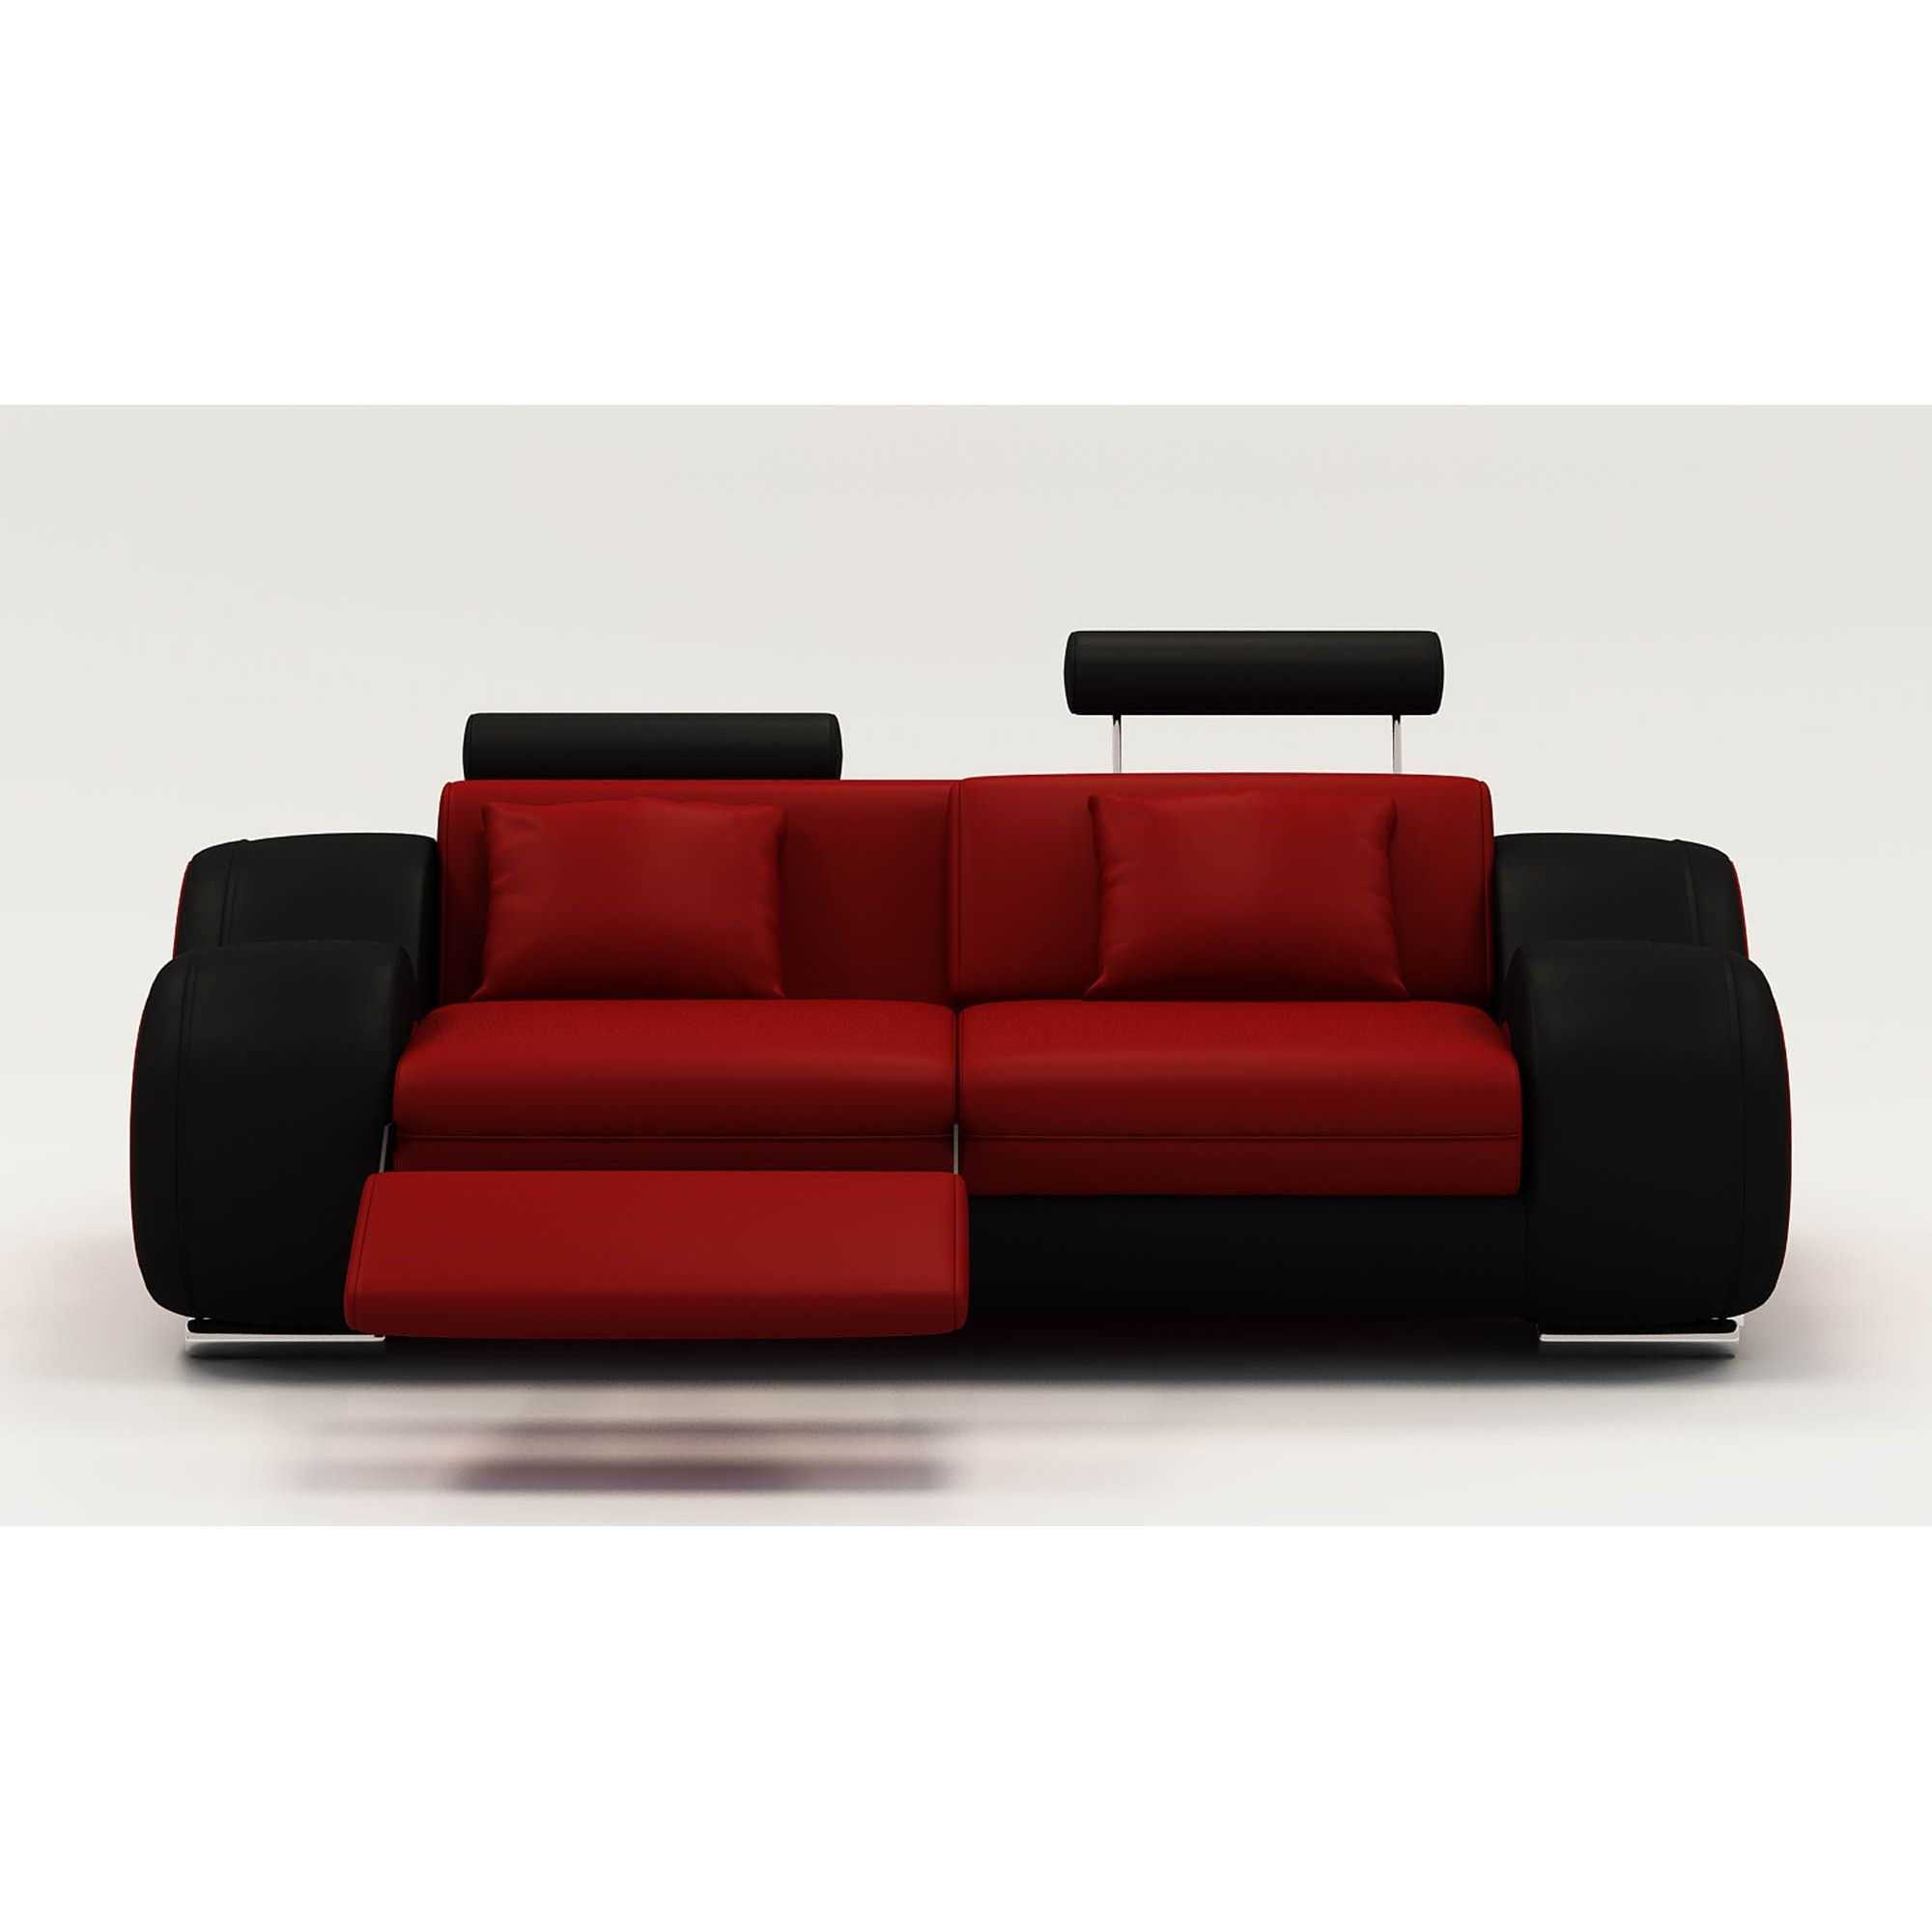 Deco in paris 5 canape 2 places design relax oslo en cuir rouge et noir osl - Canape cuir noir design ...